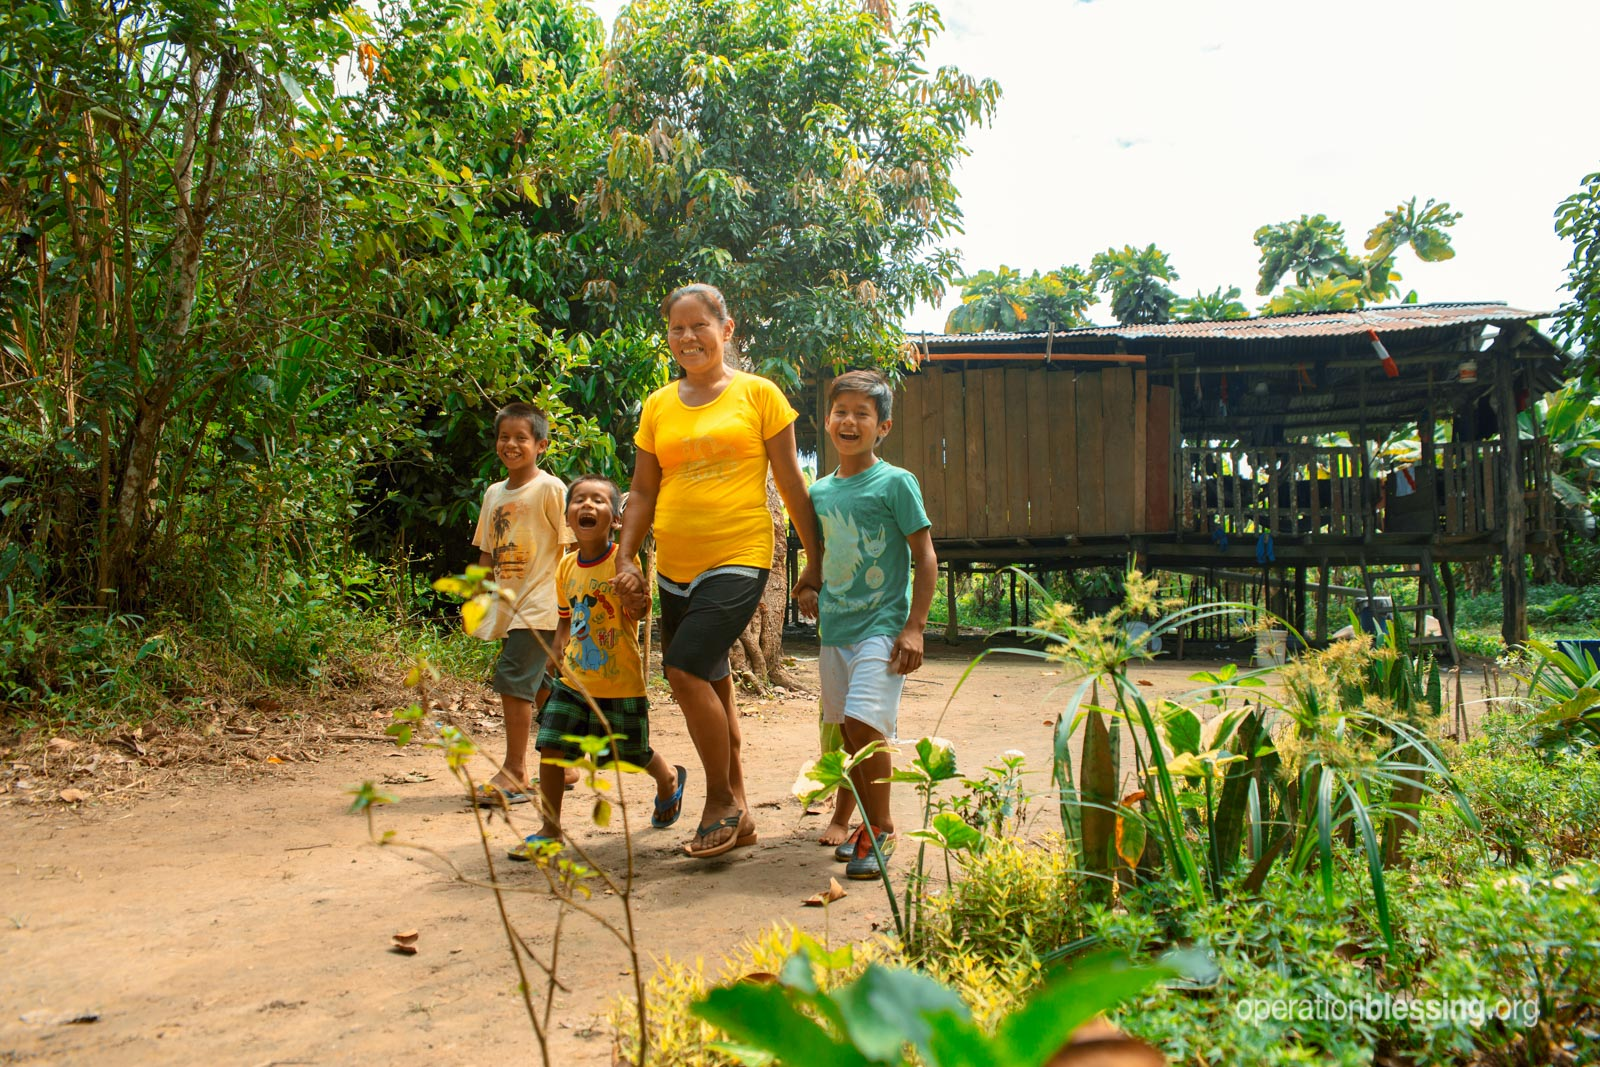 Rosa walking with her children.